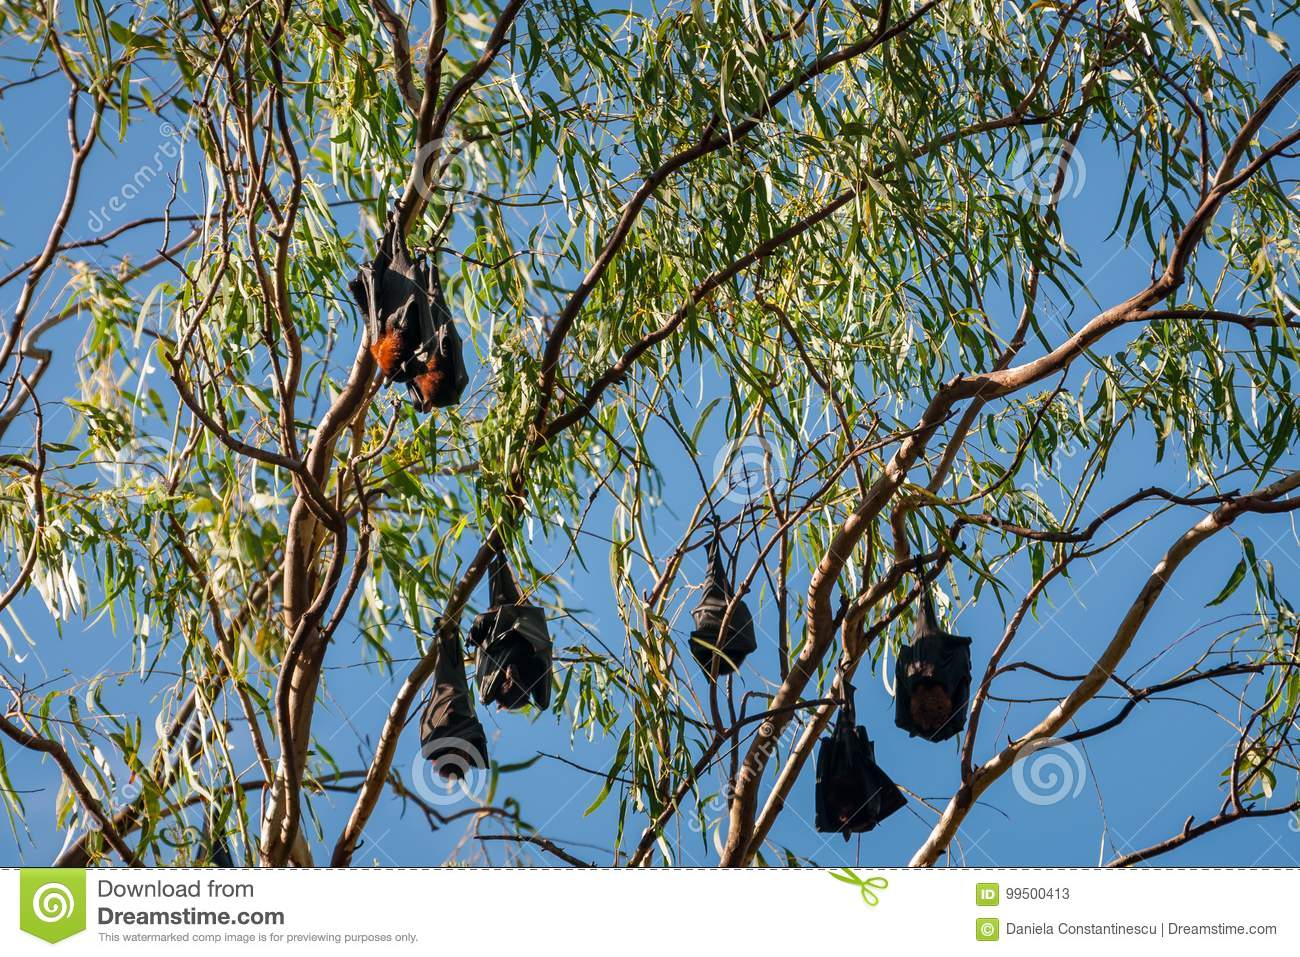 A group of Bats hanging in a tree at Katherine Gorge, Australia